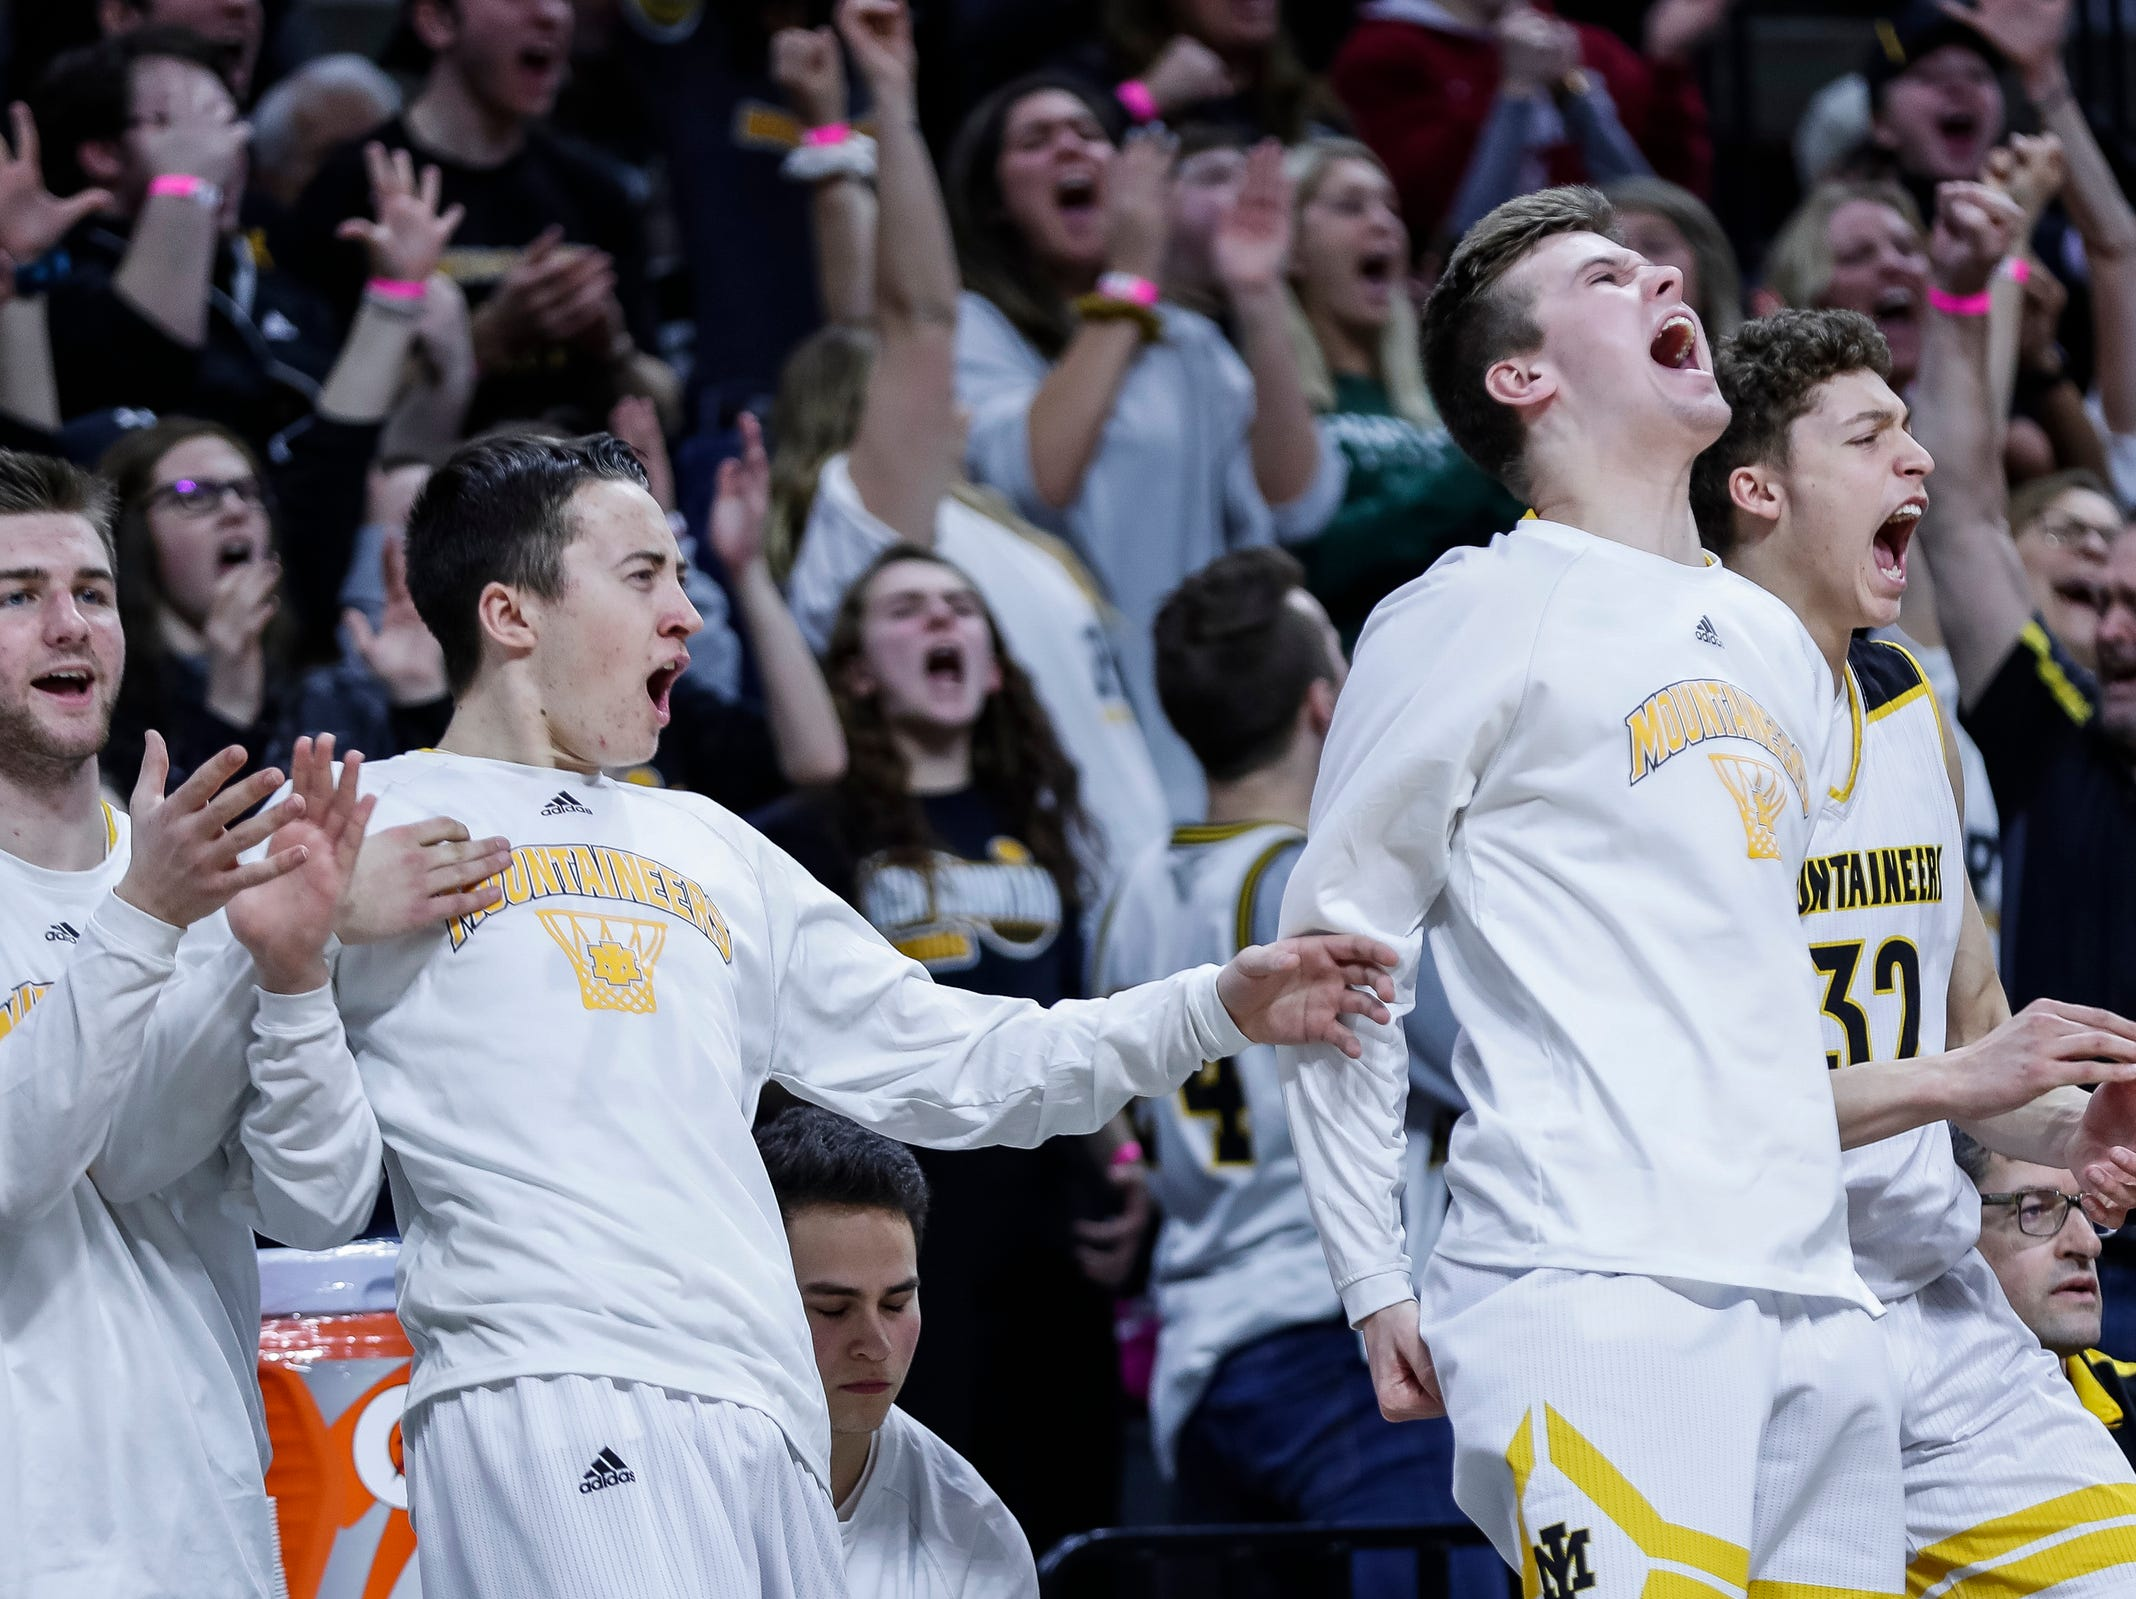 Iron Mountain's bench reacts during the second half of the MHSAA Division 3 semifinal against Detroit Edison at Breslin Center in East Lansing, Thursday, March 14, 2019.